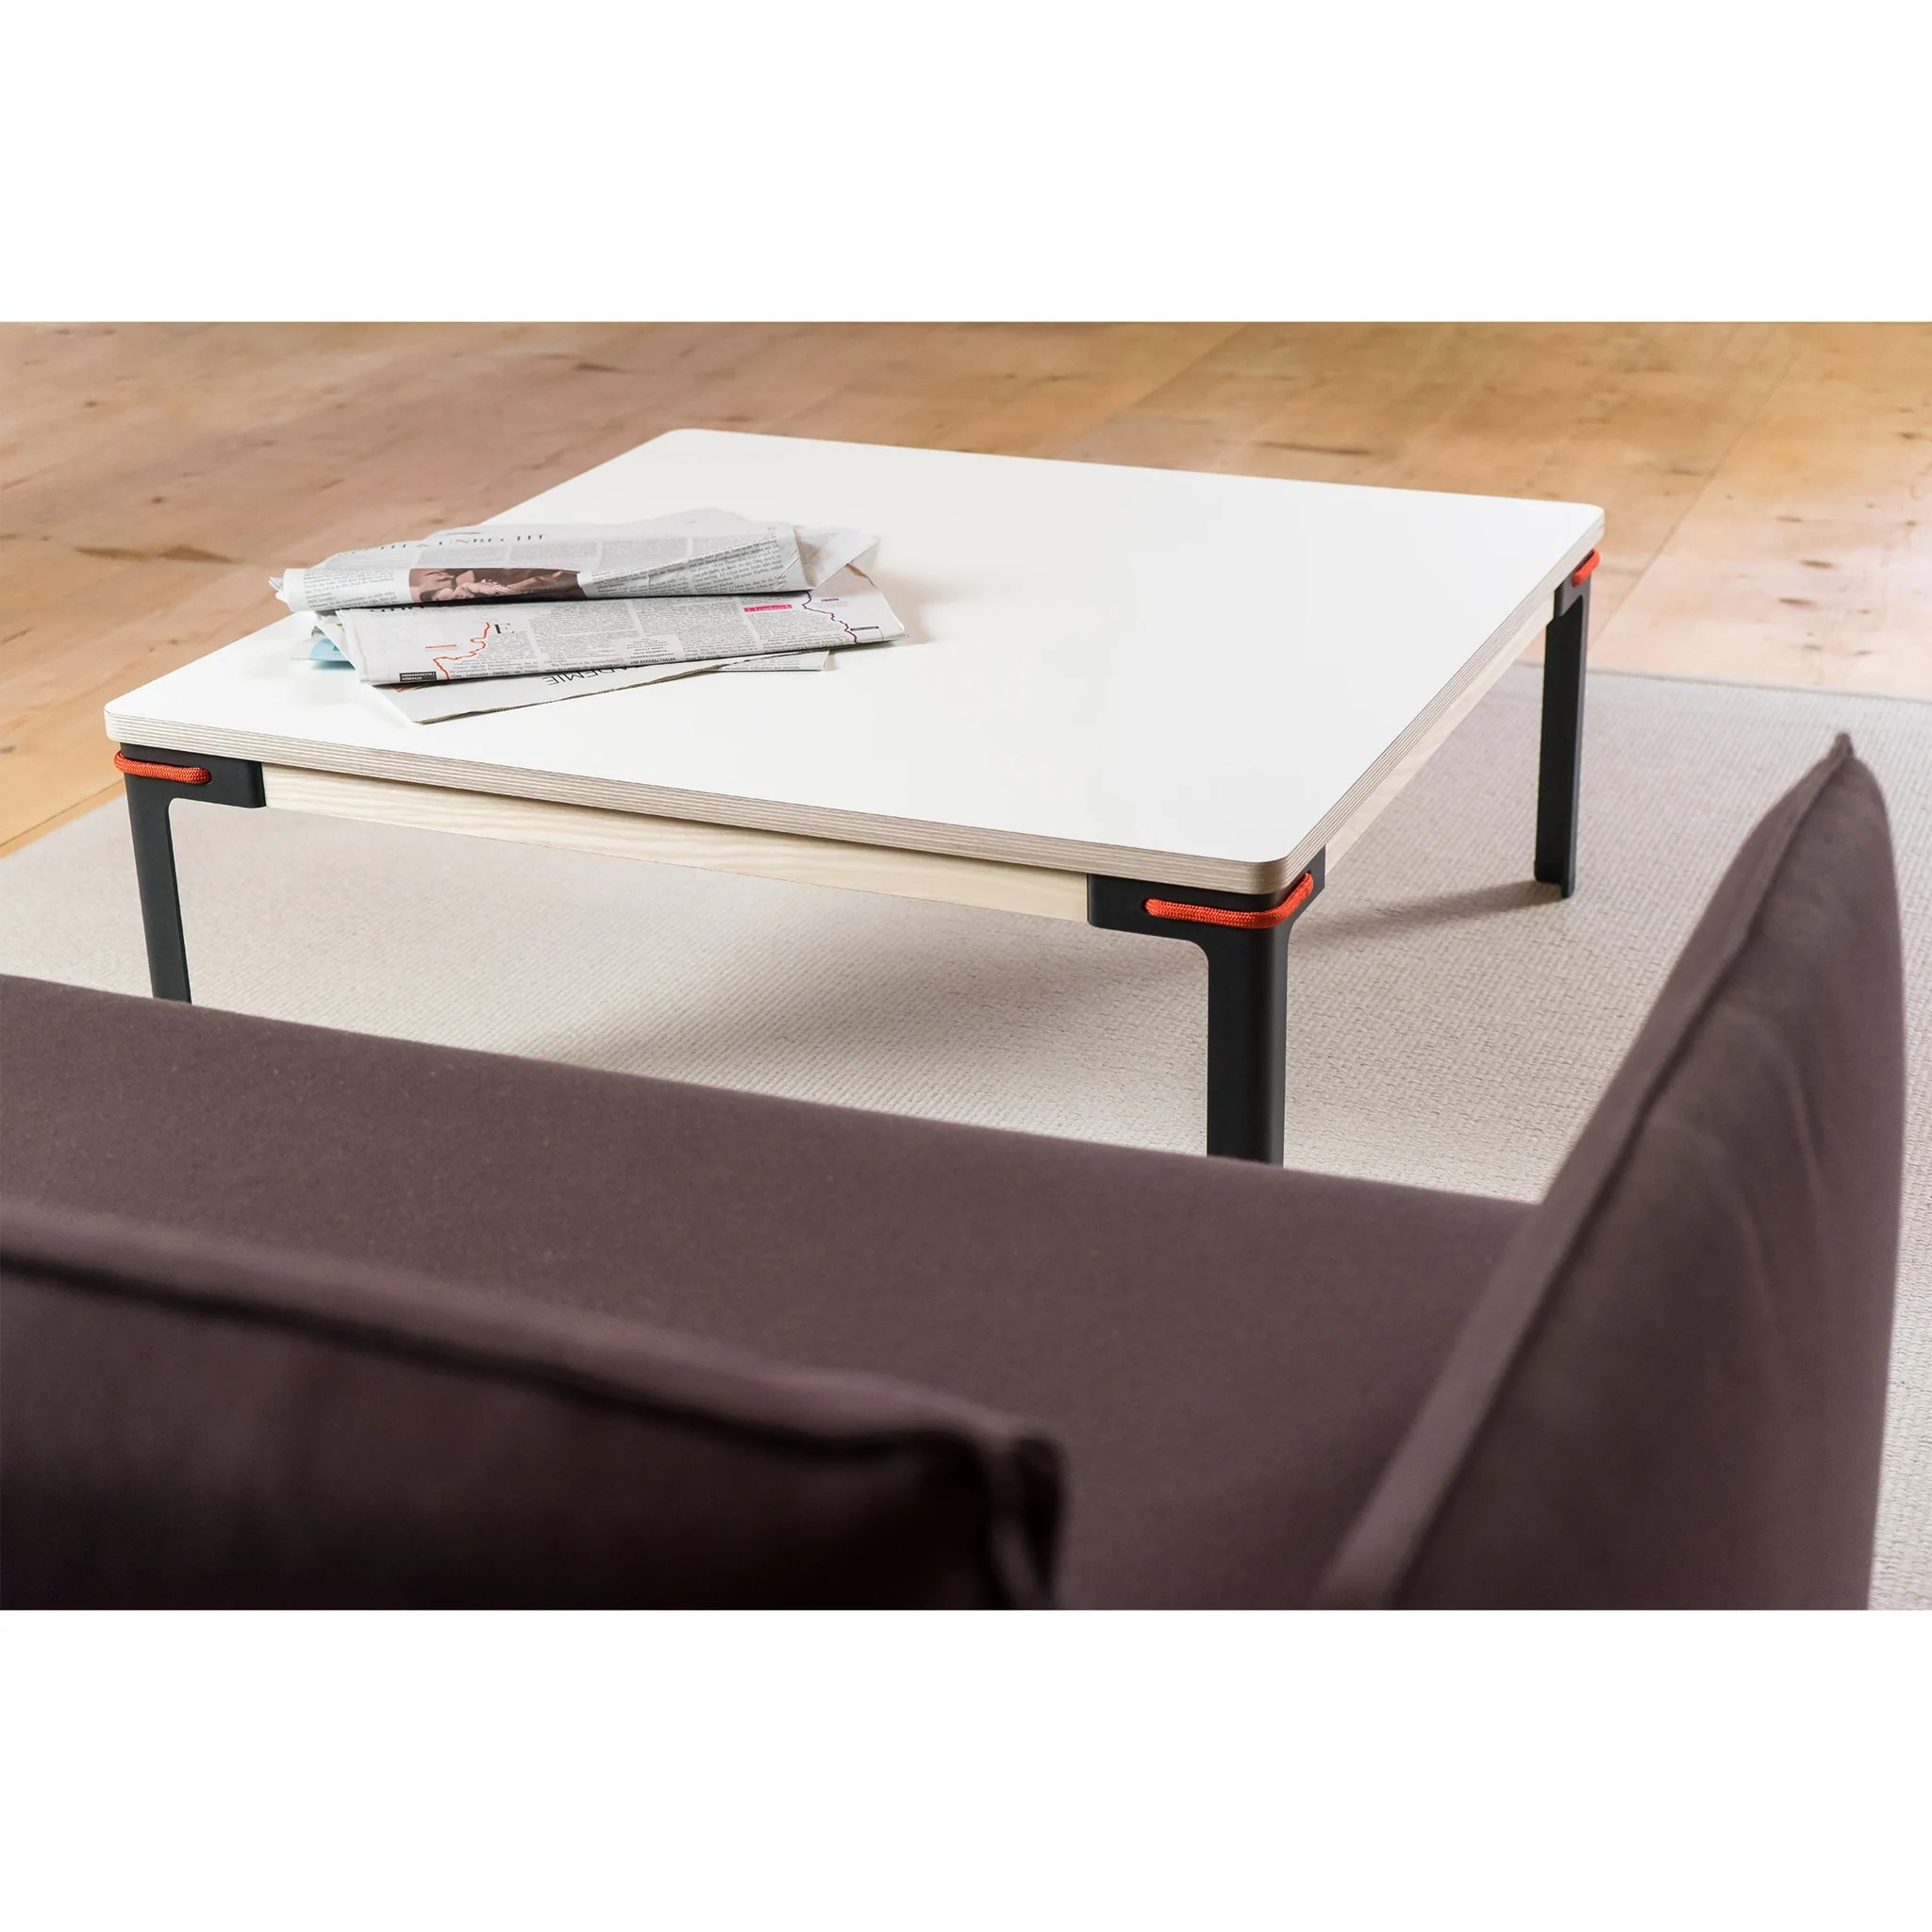 New York Couchtisch Moormann Seiltänzer Sidetable Stillfried Wien New York